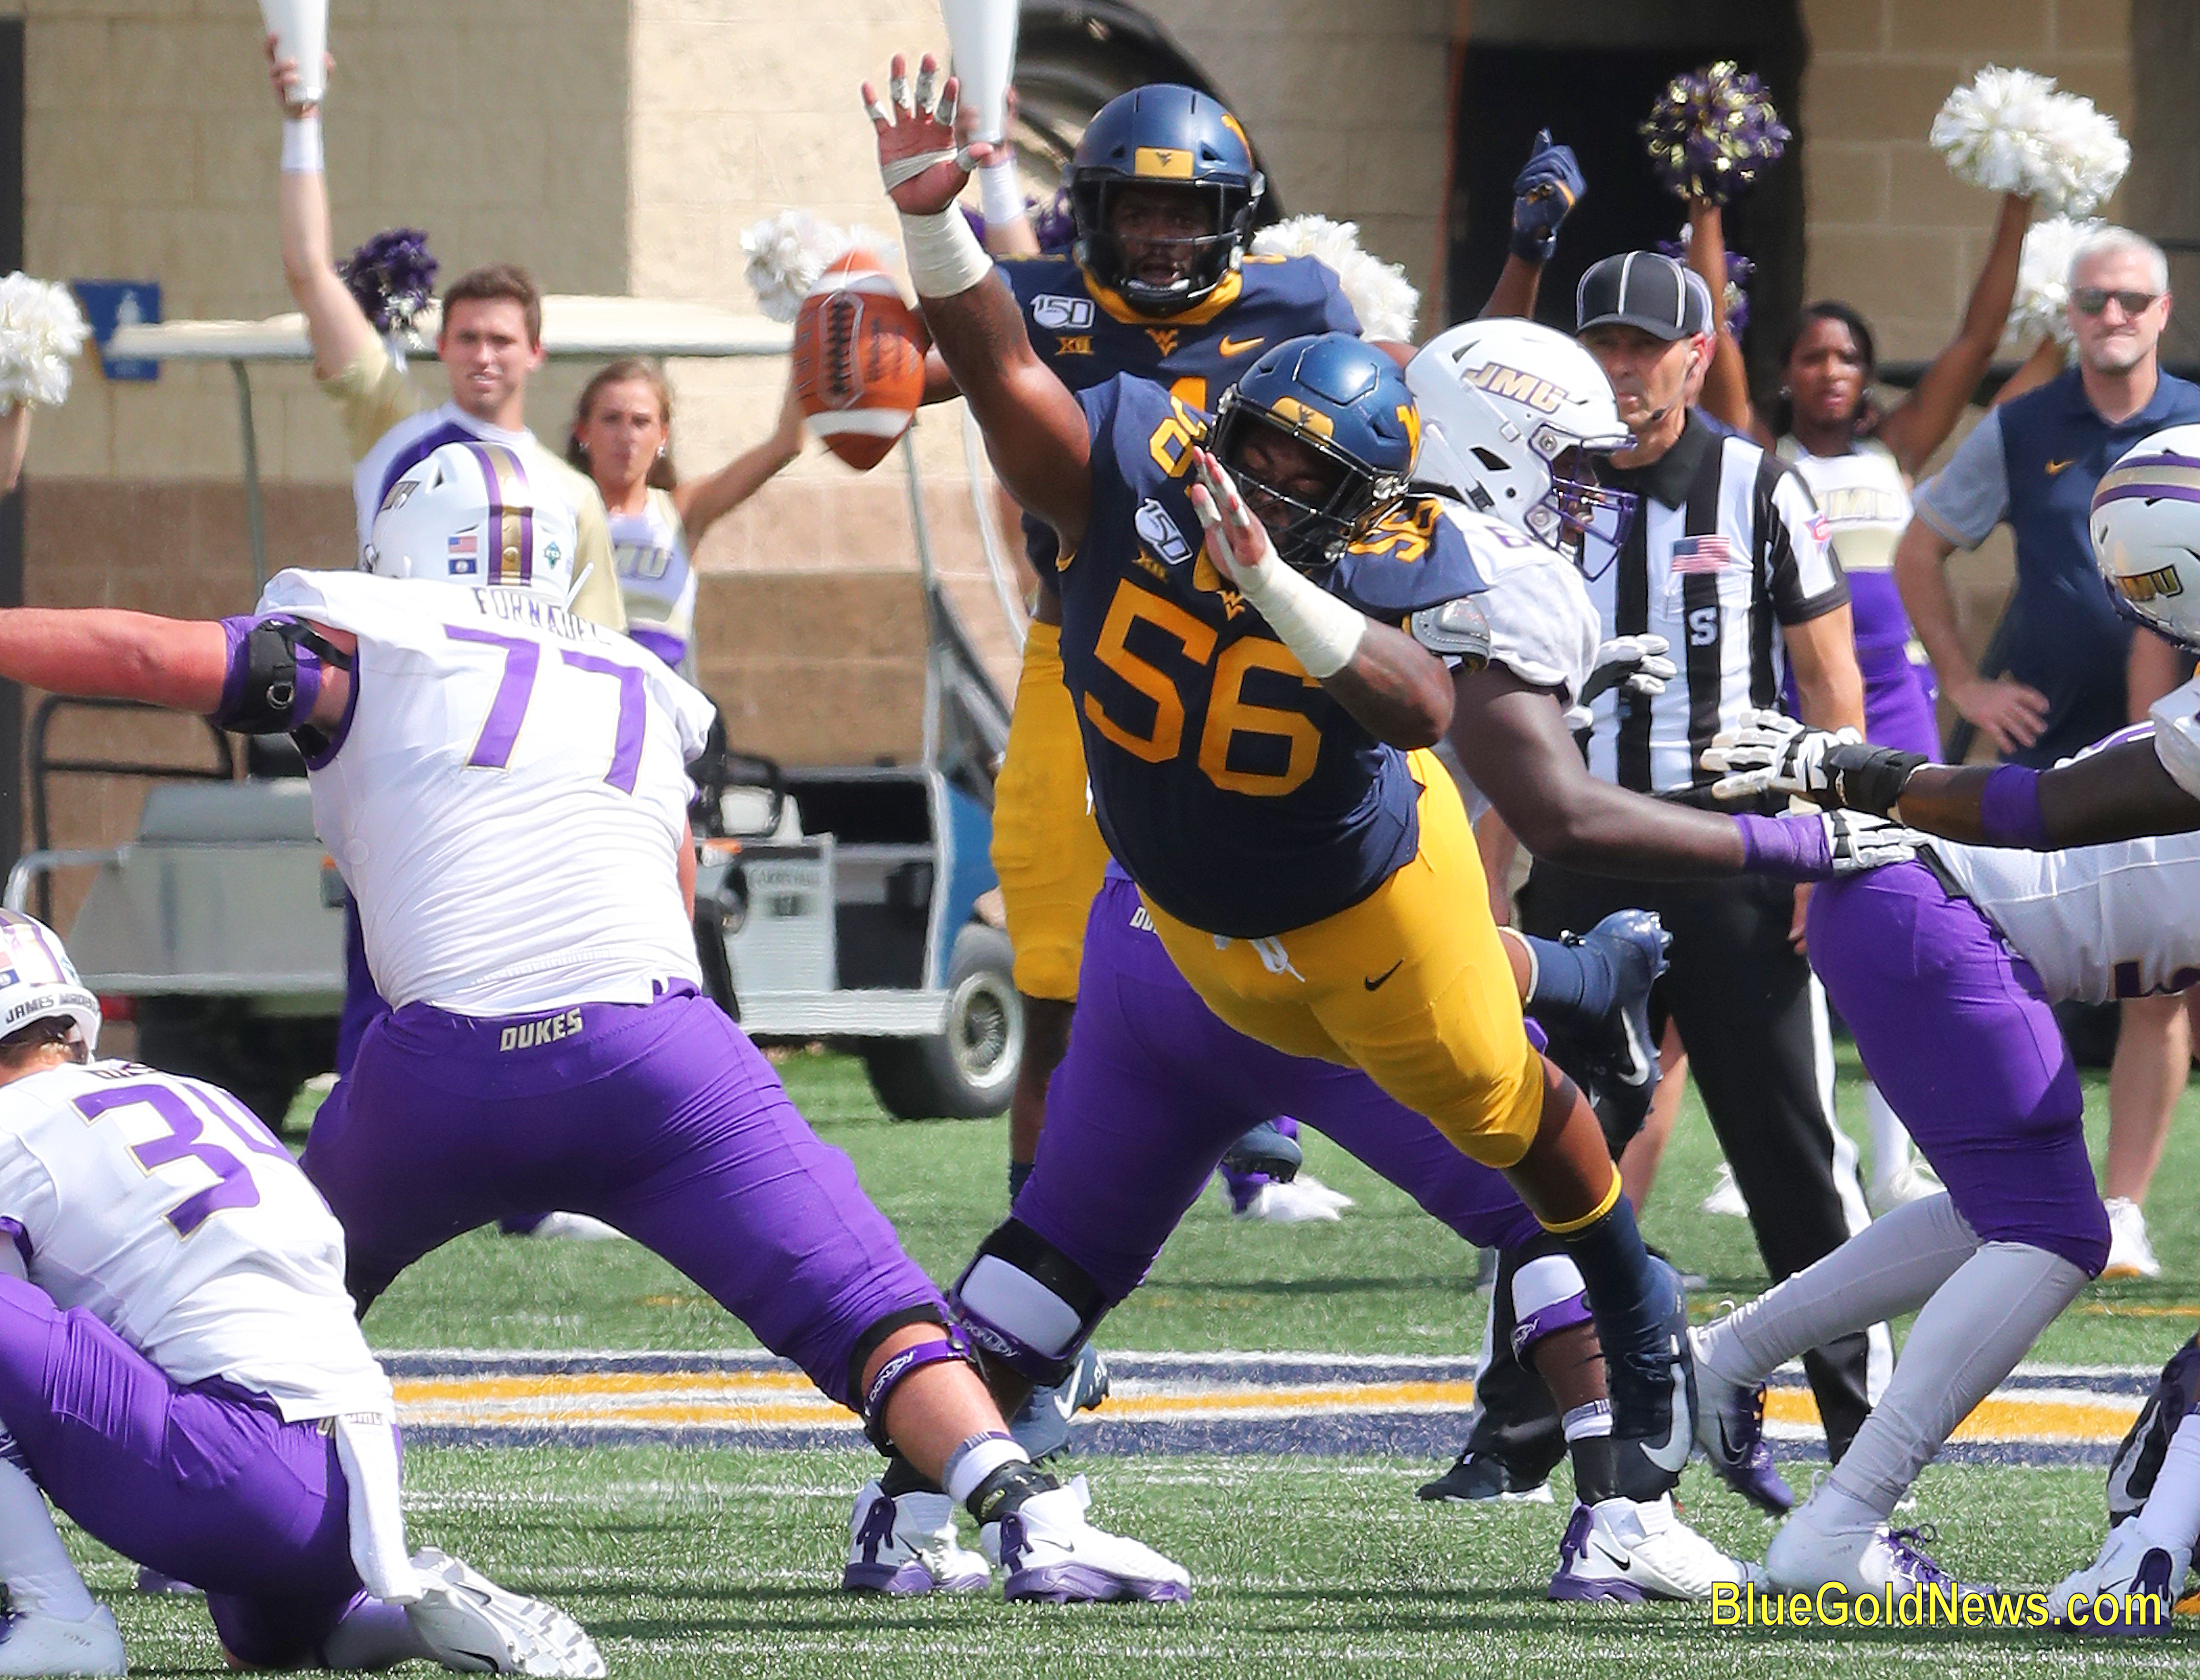 West Virginia defensive lineman Darius Stills (56) lays out to block a James Madison field goal